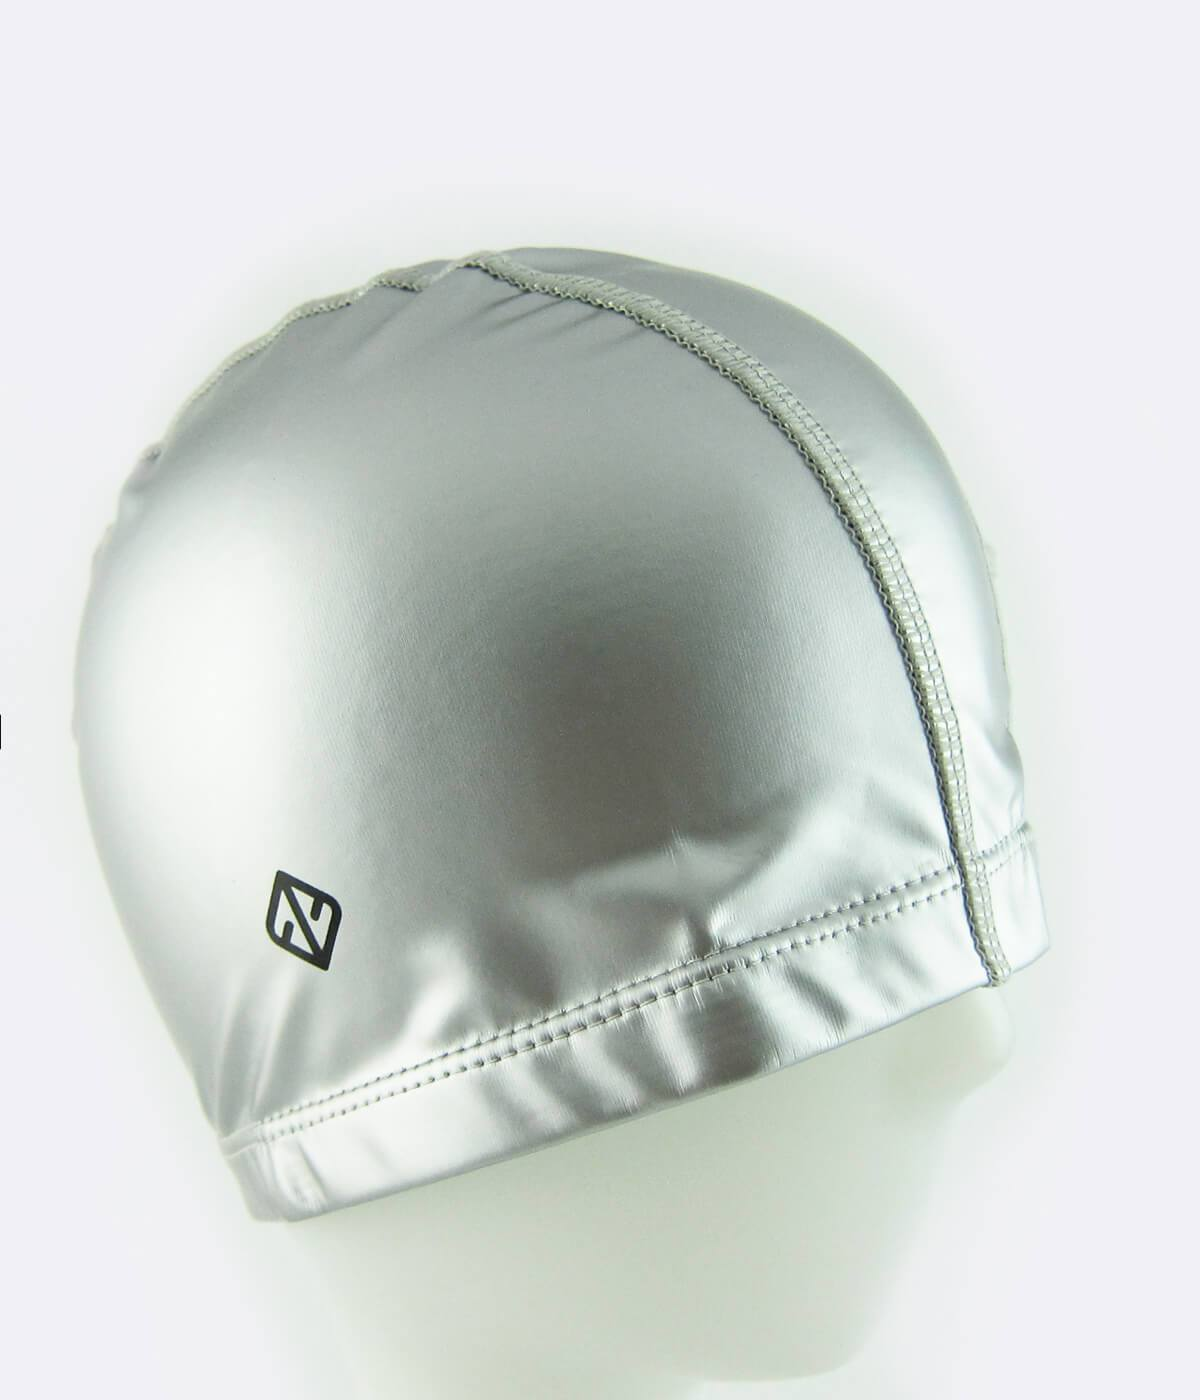 PU Coated Swimming Cap in Matte Silver - FUNFIT